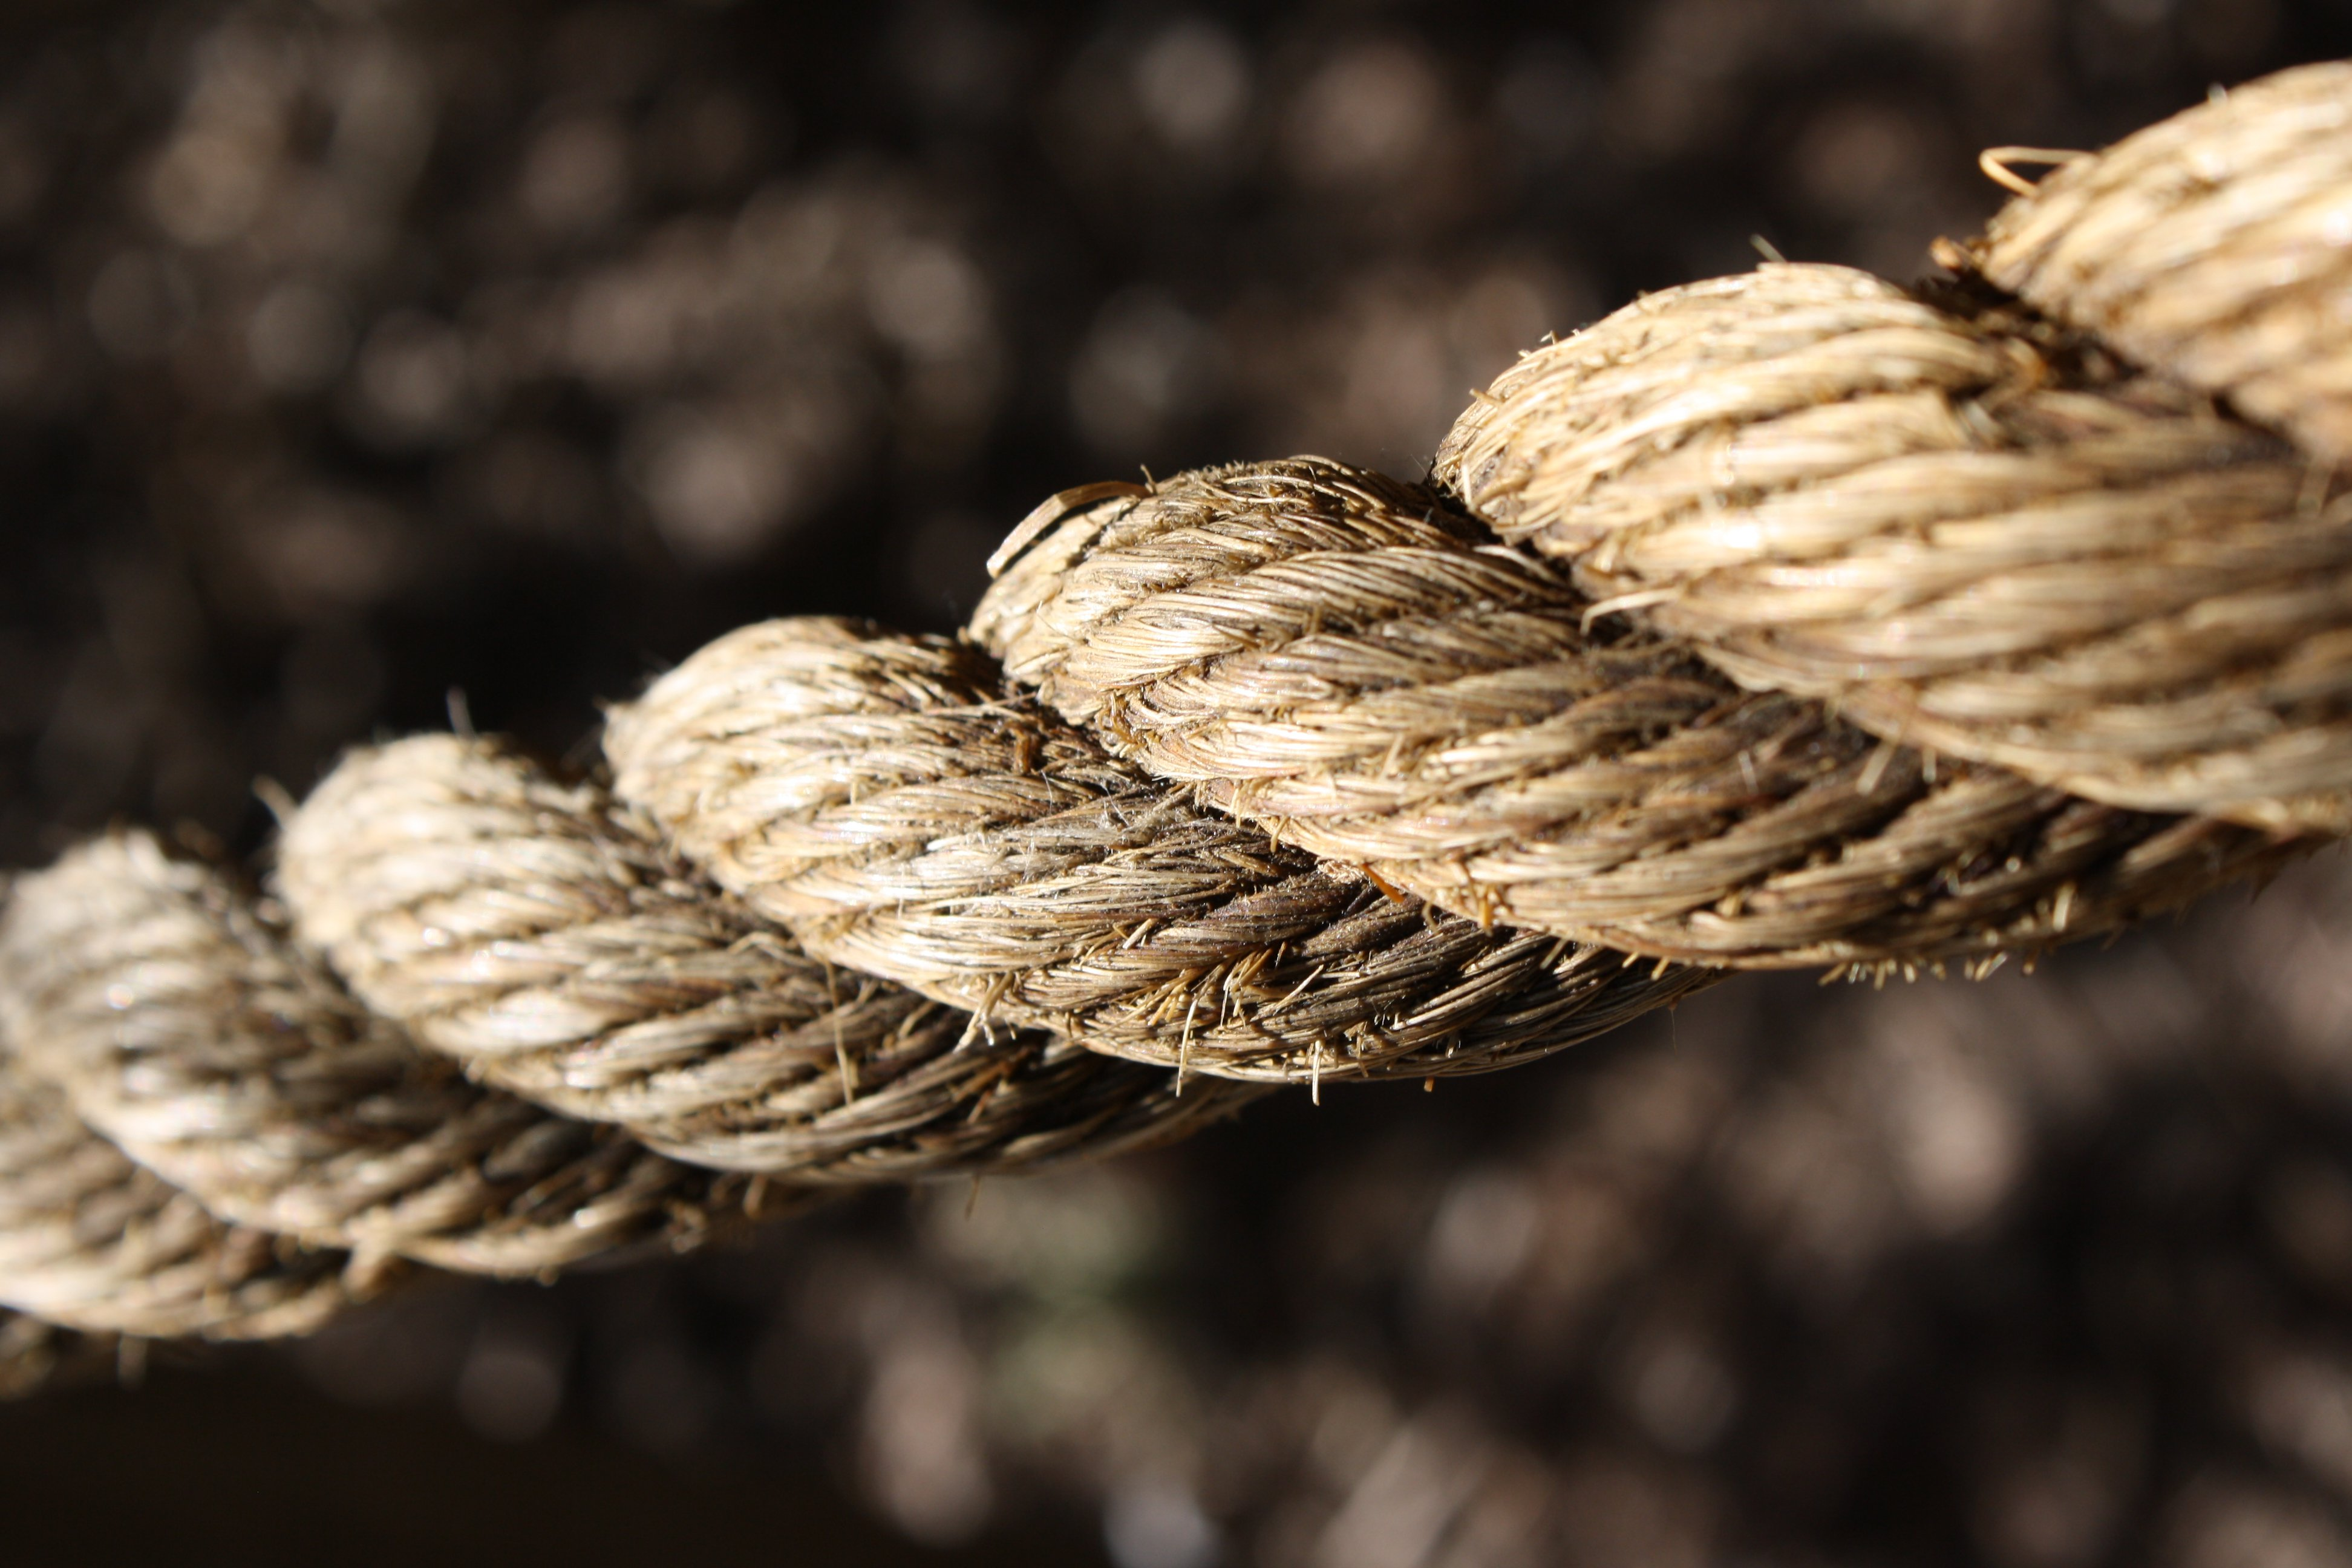 Twisted Rope Close Up Picture.